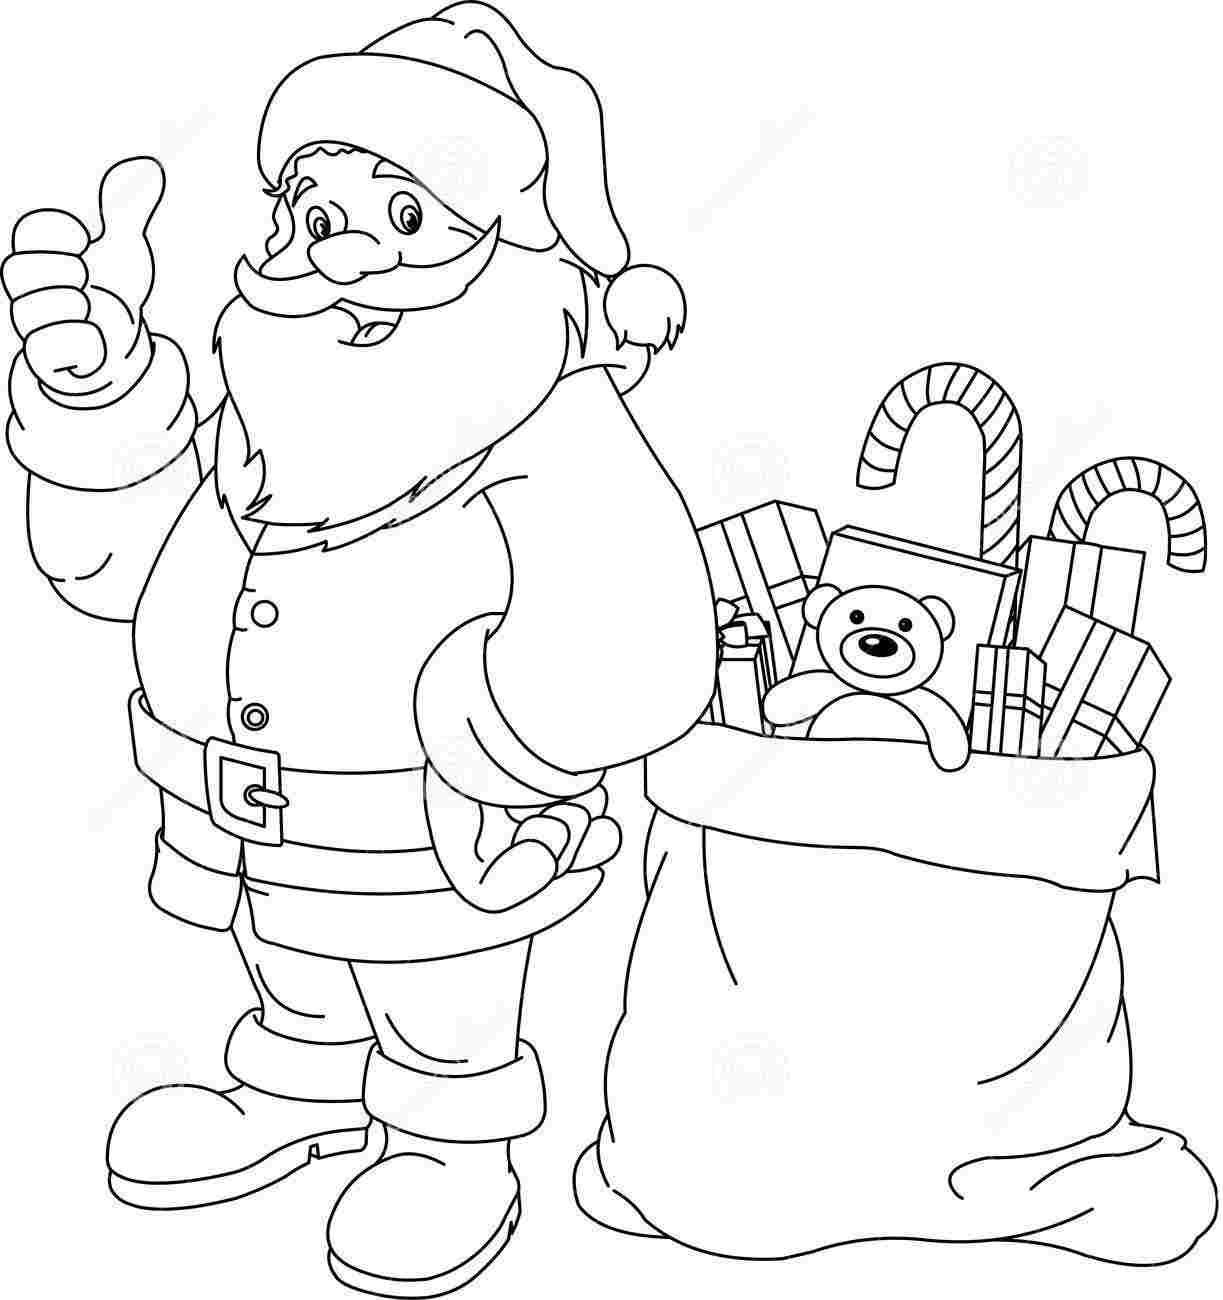 Santa Claus Coloring Pages 01